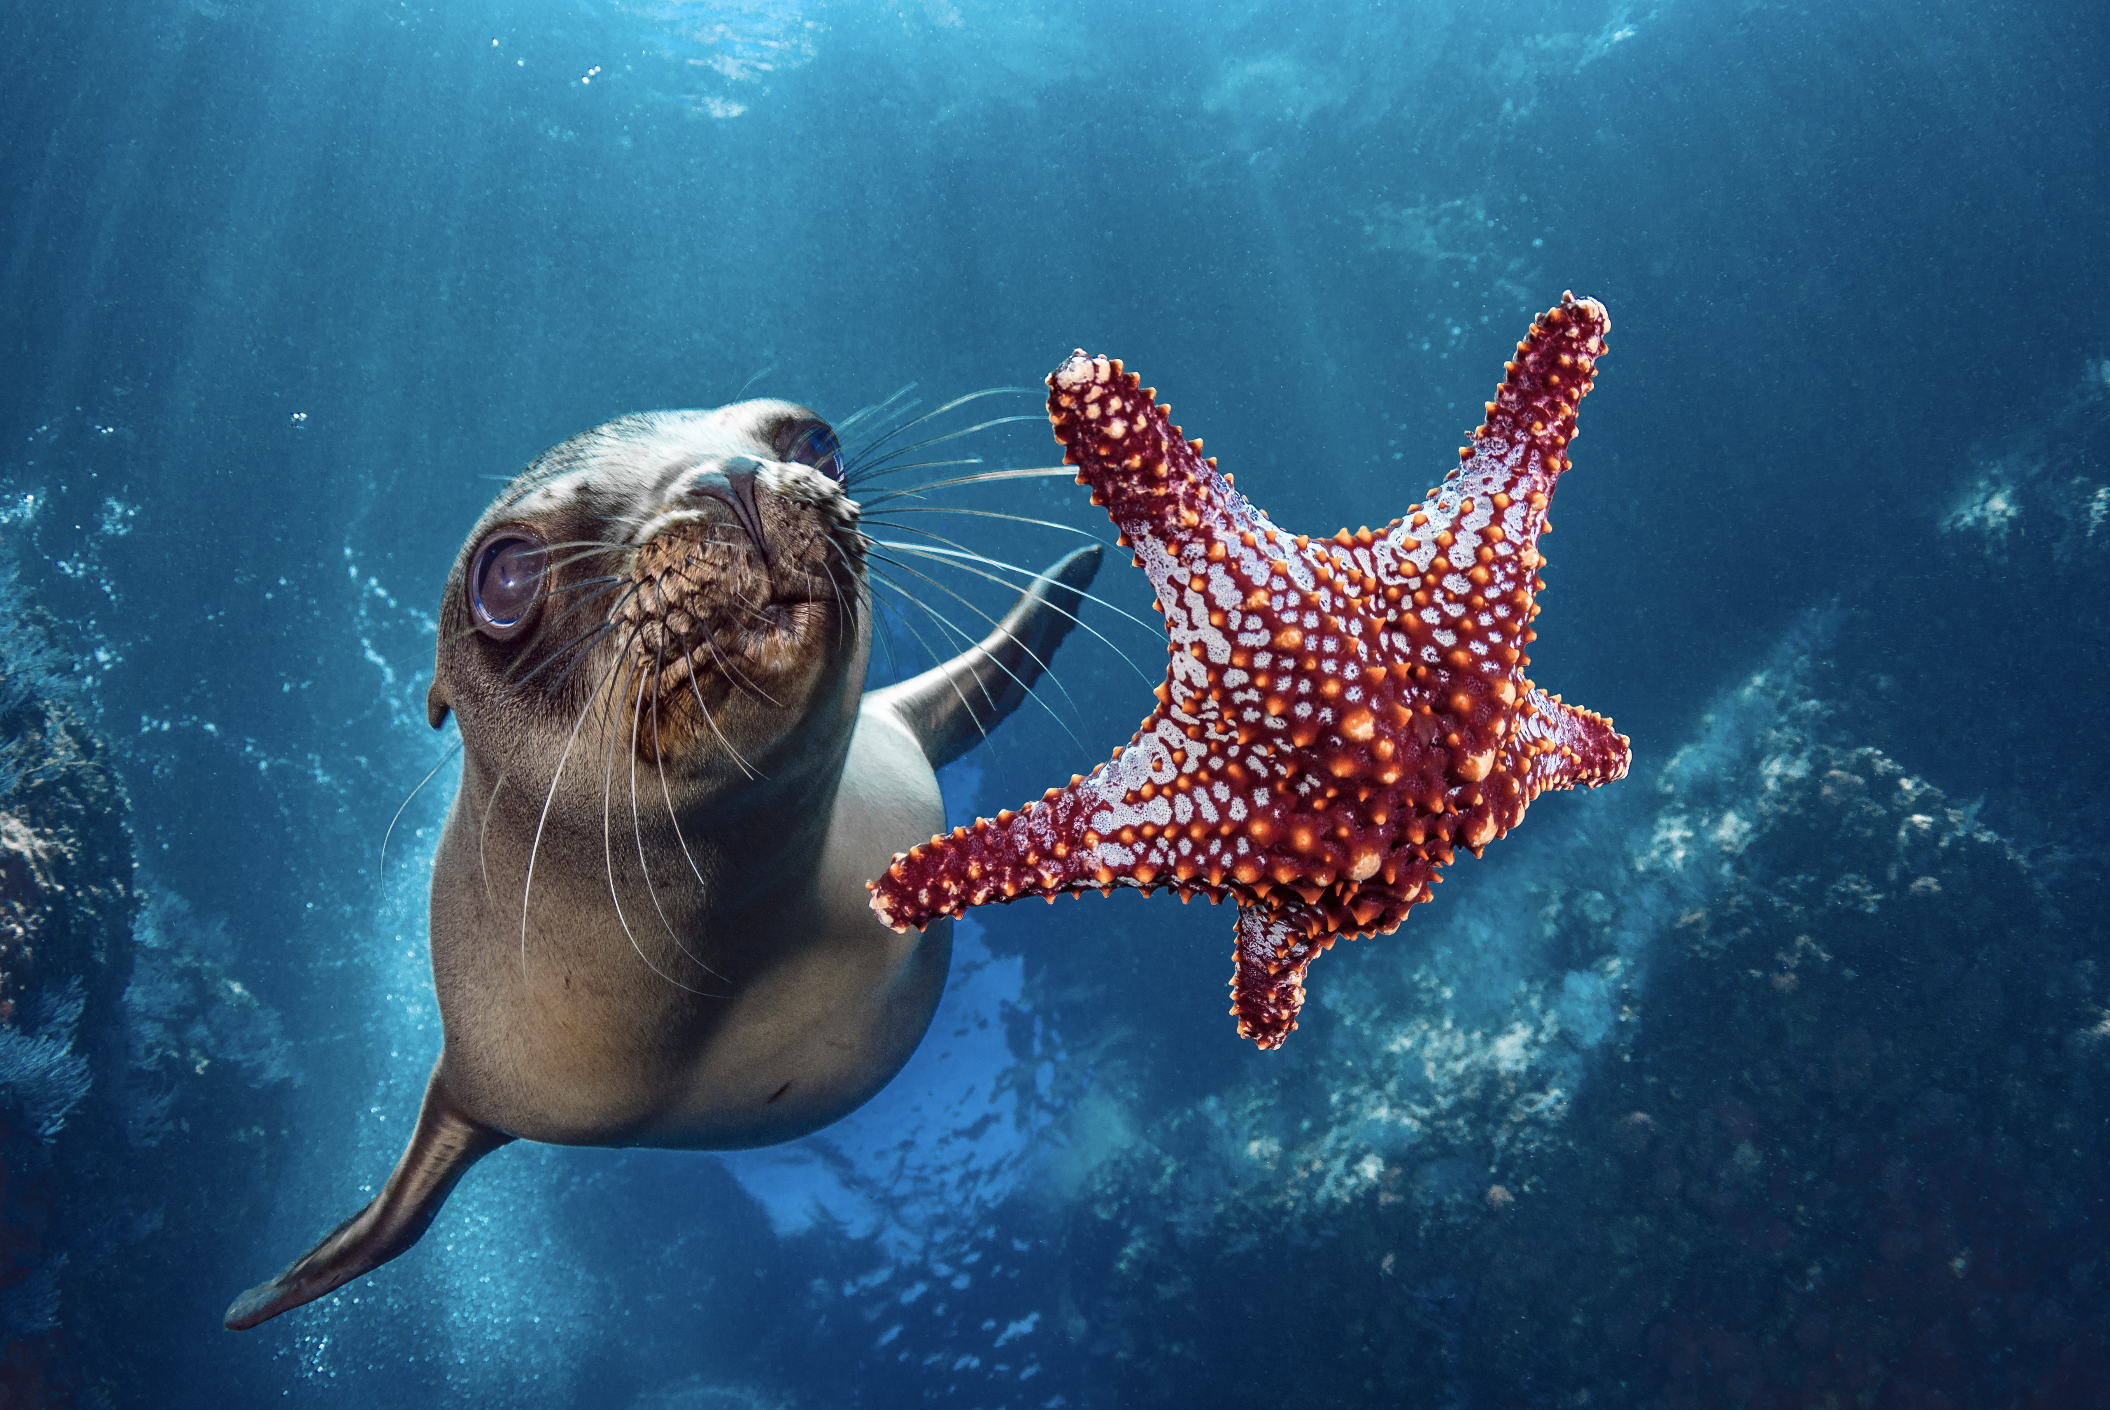 california sea lion, baja california credit: hannes klostermann / coral reef image bank